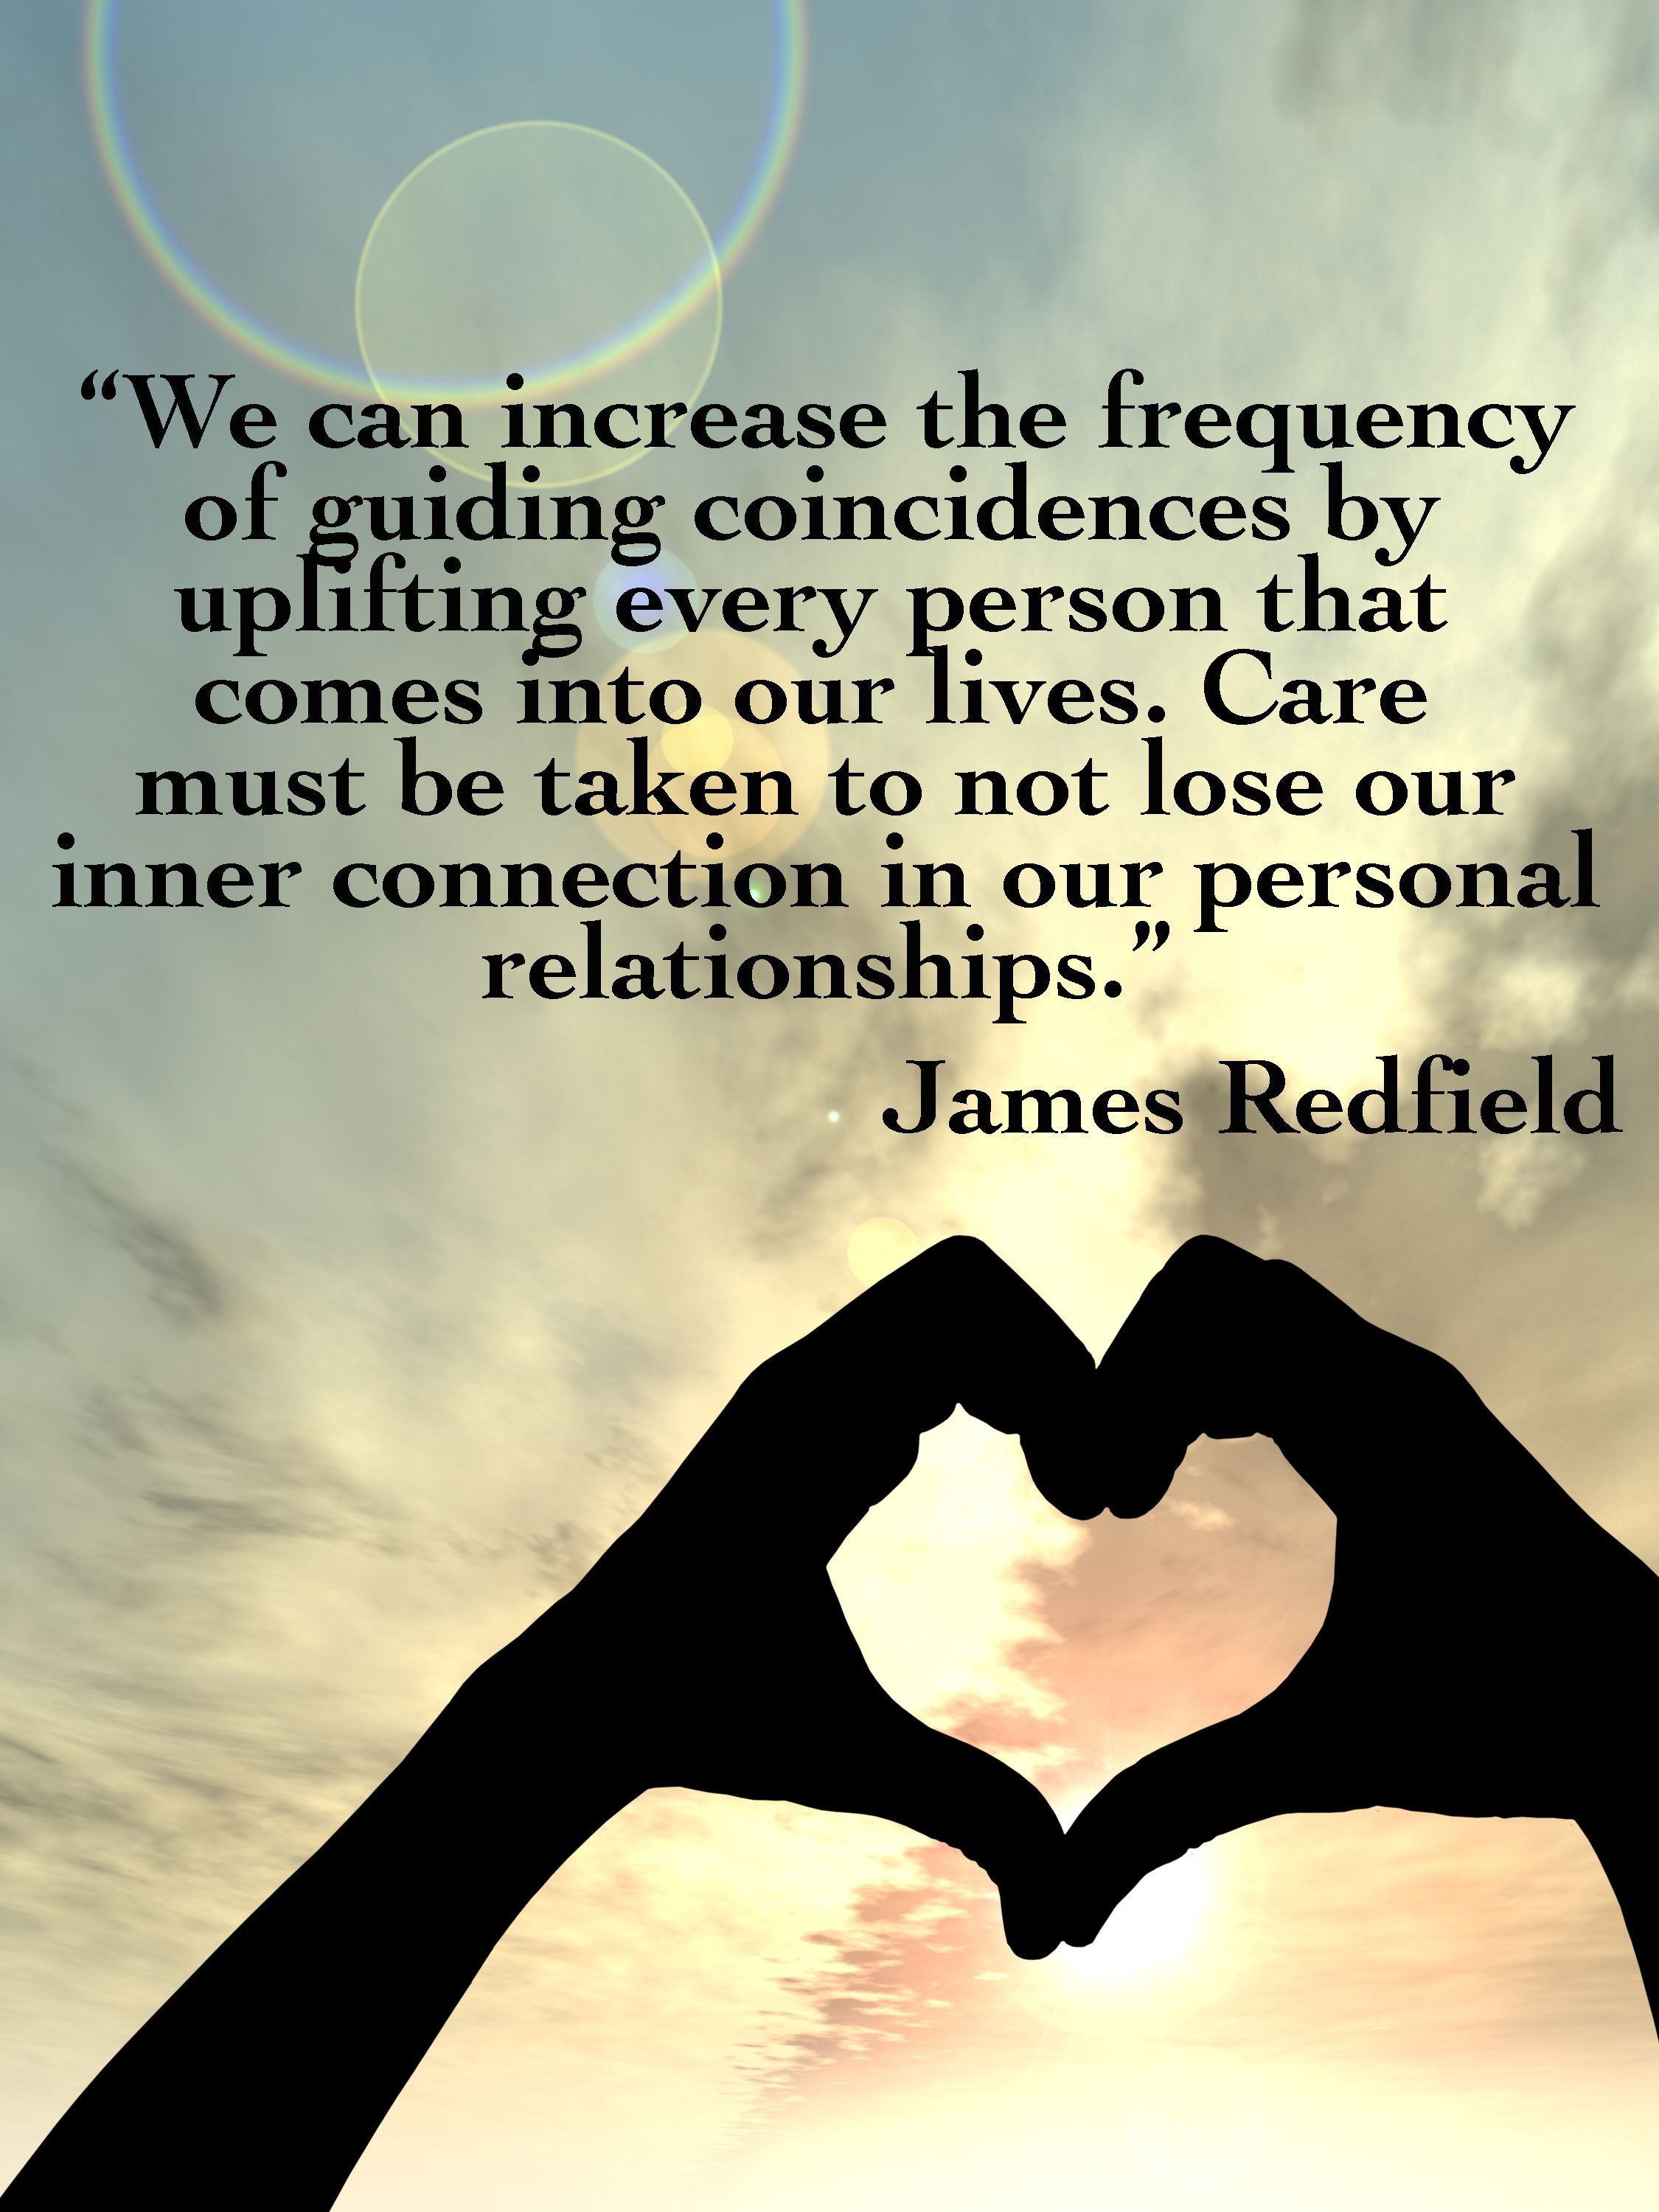 Spiritual Uplifting Quotes Simple Inspirational And Spiritual Quotesjames Redfield  Celestine